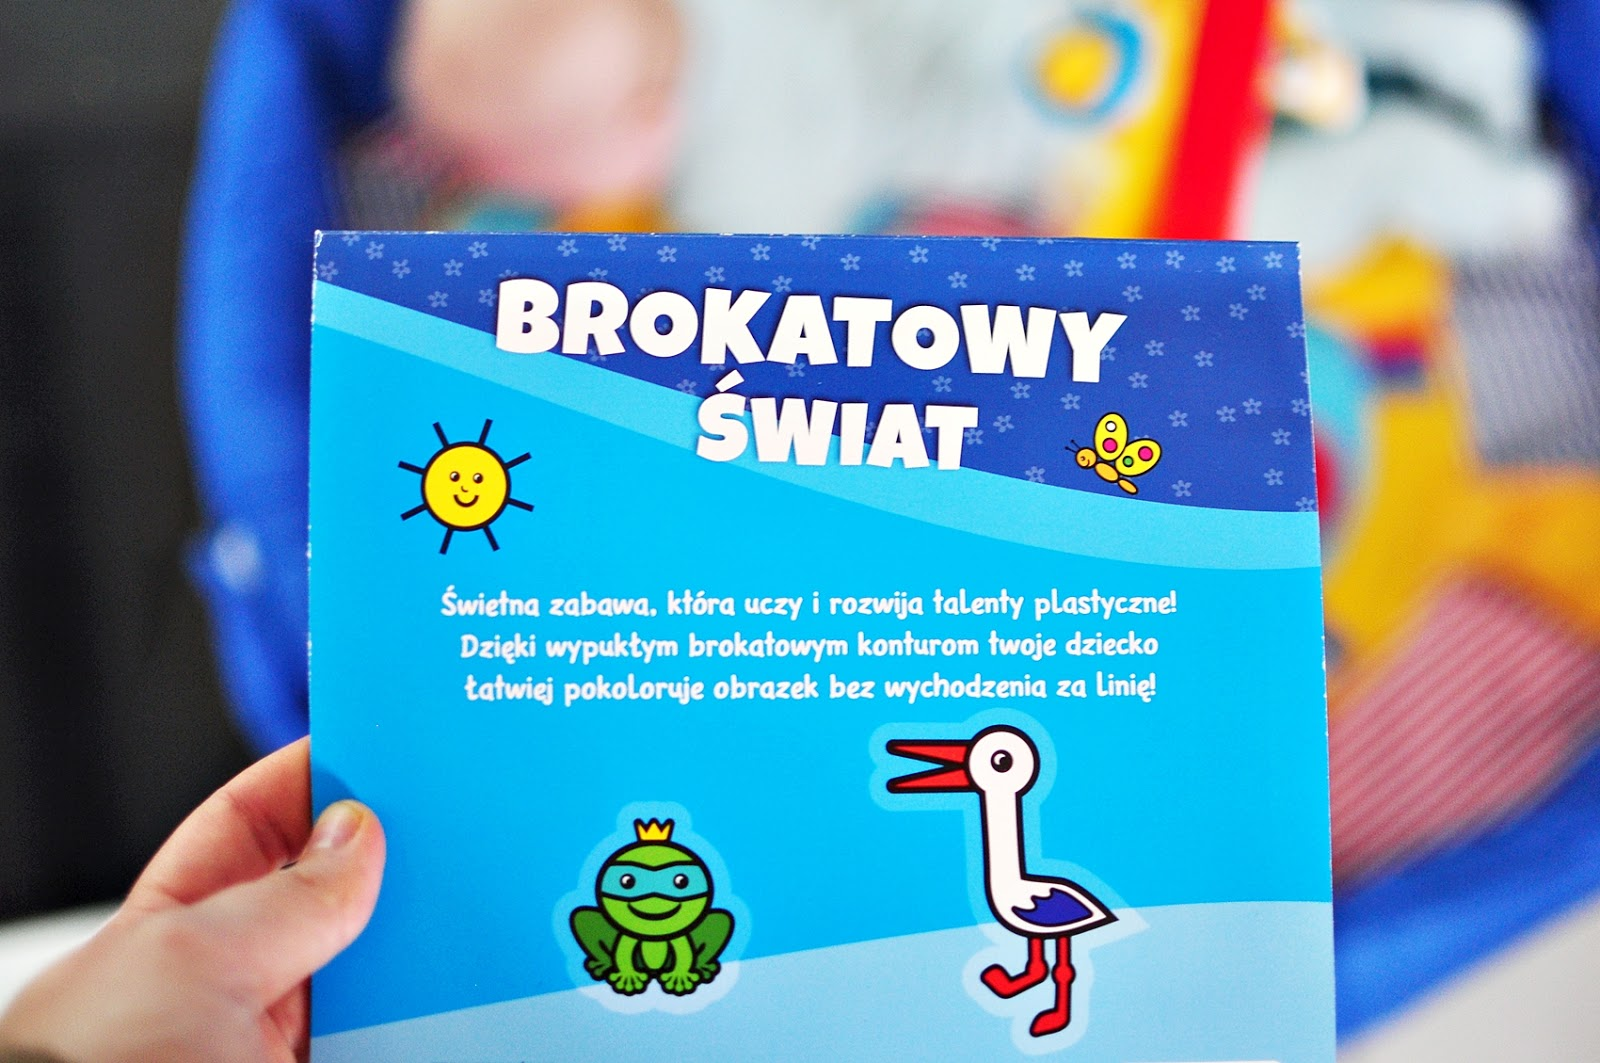 brokatowy-%25C5%259Bwiat.JPG